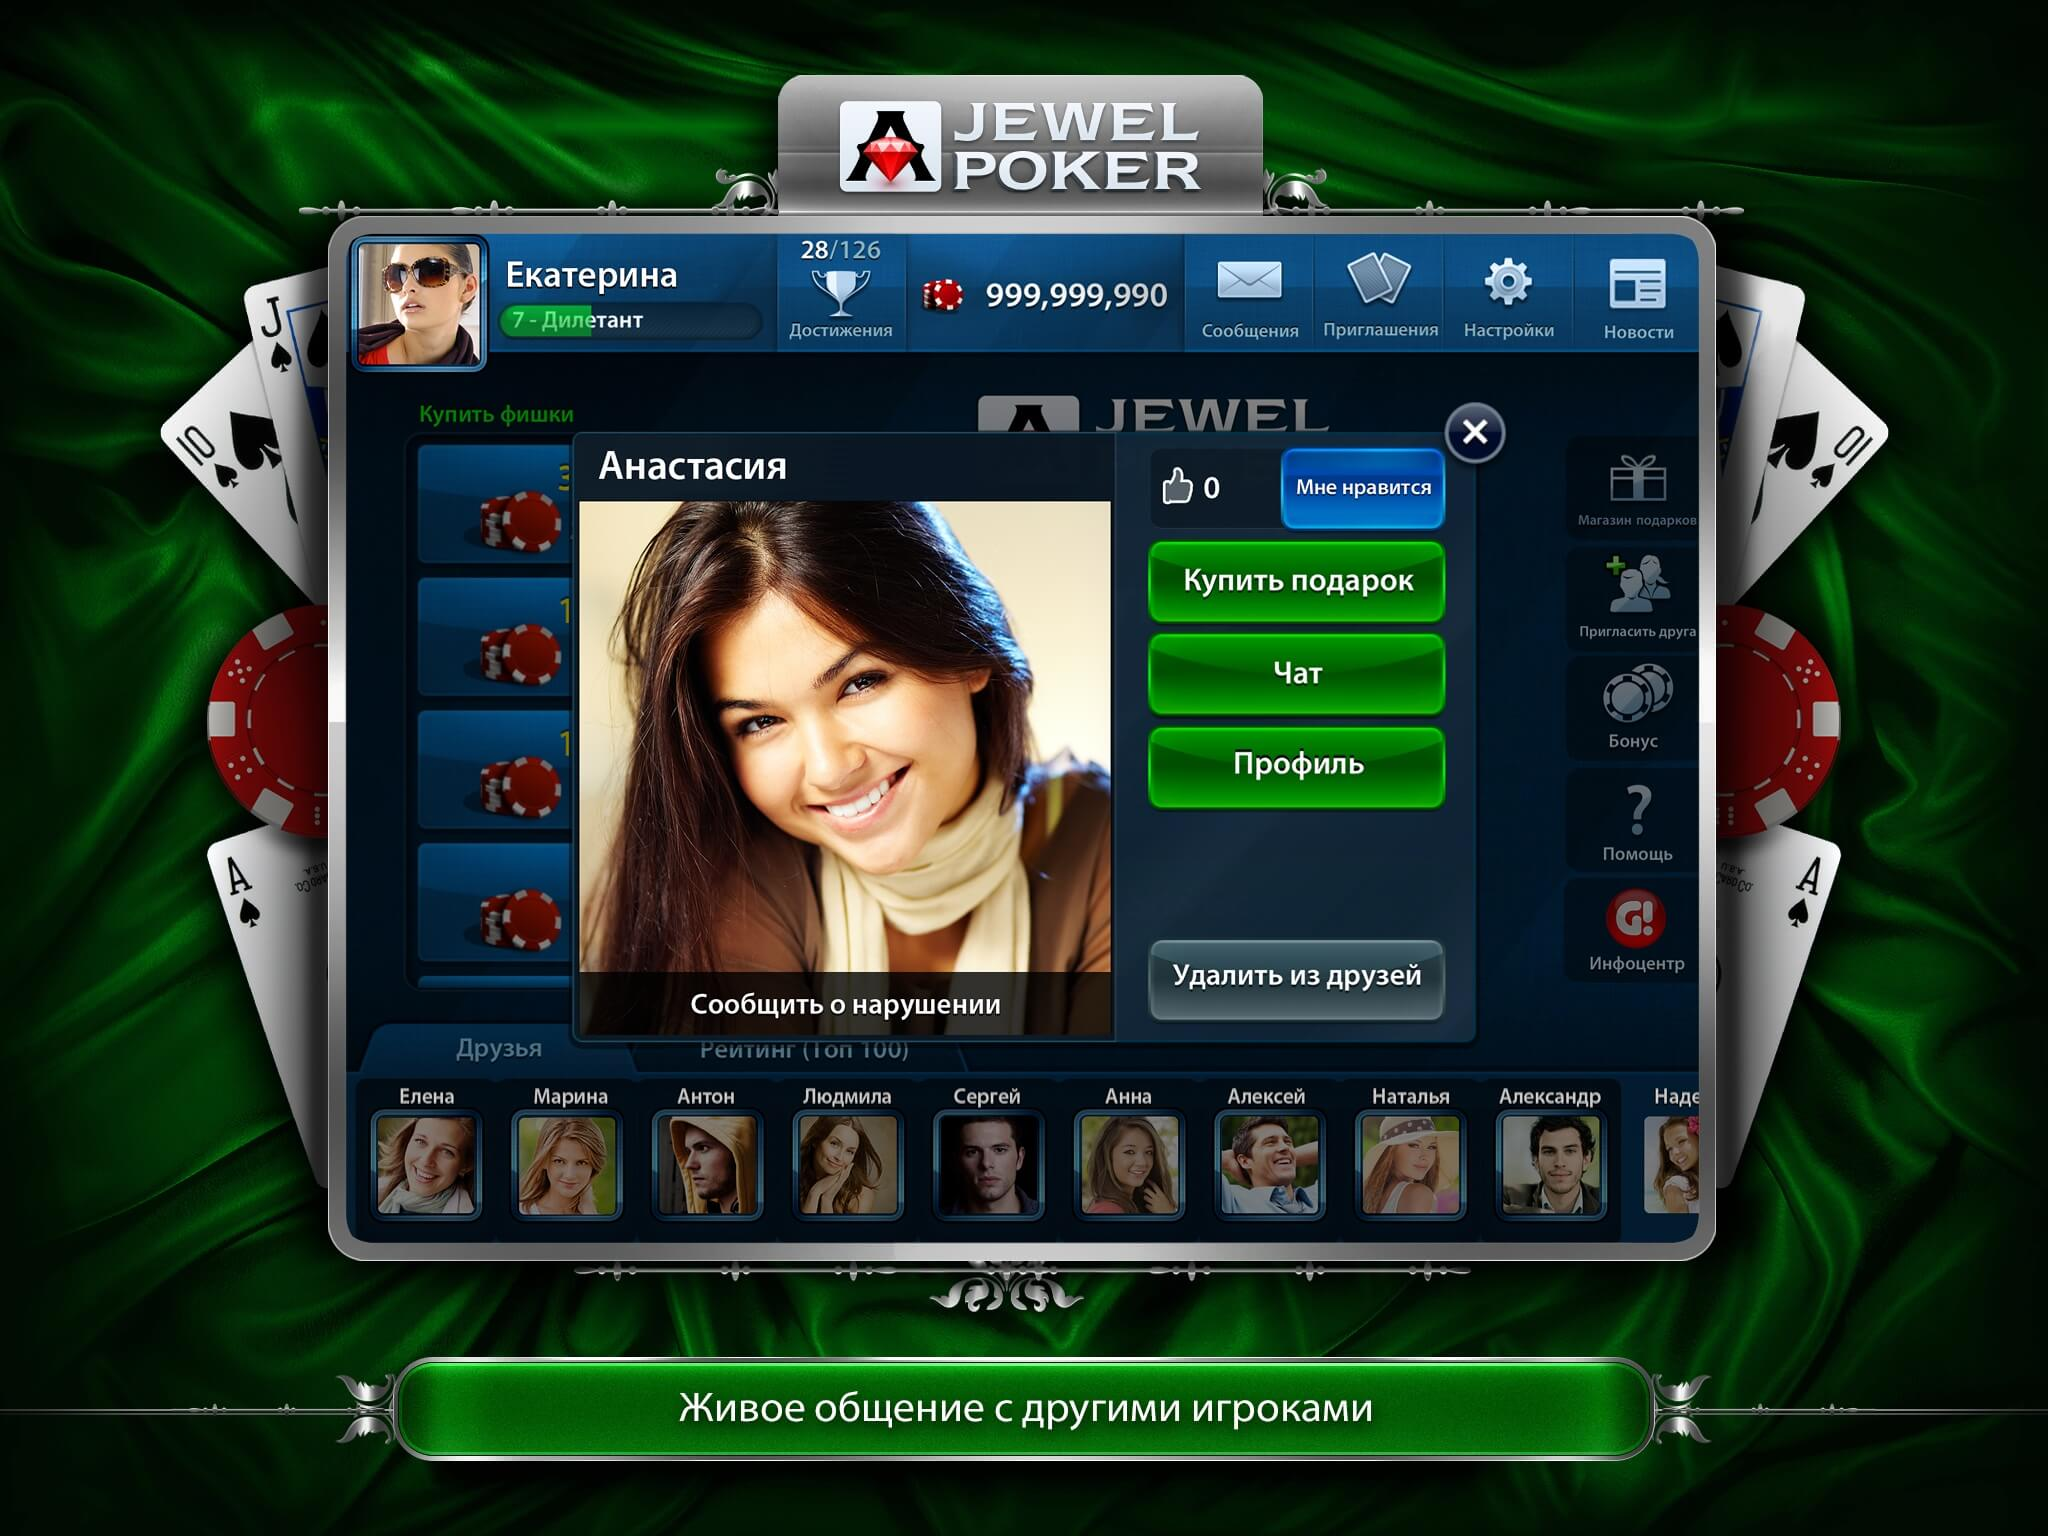 Jewel Poker